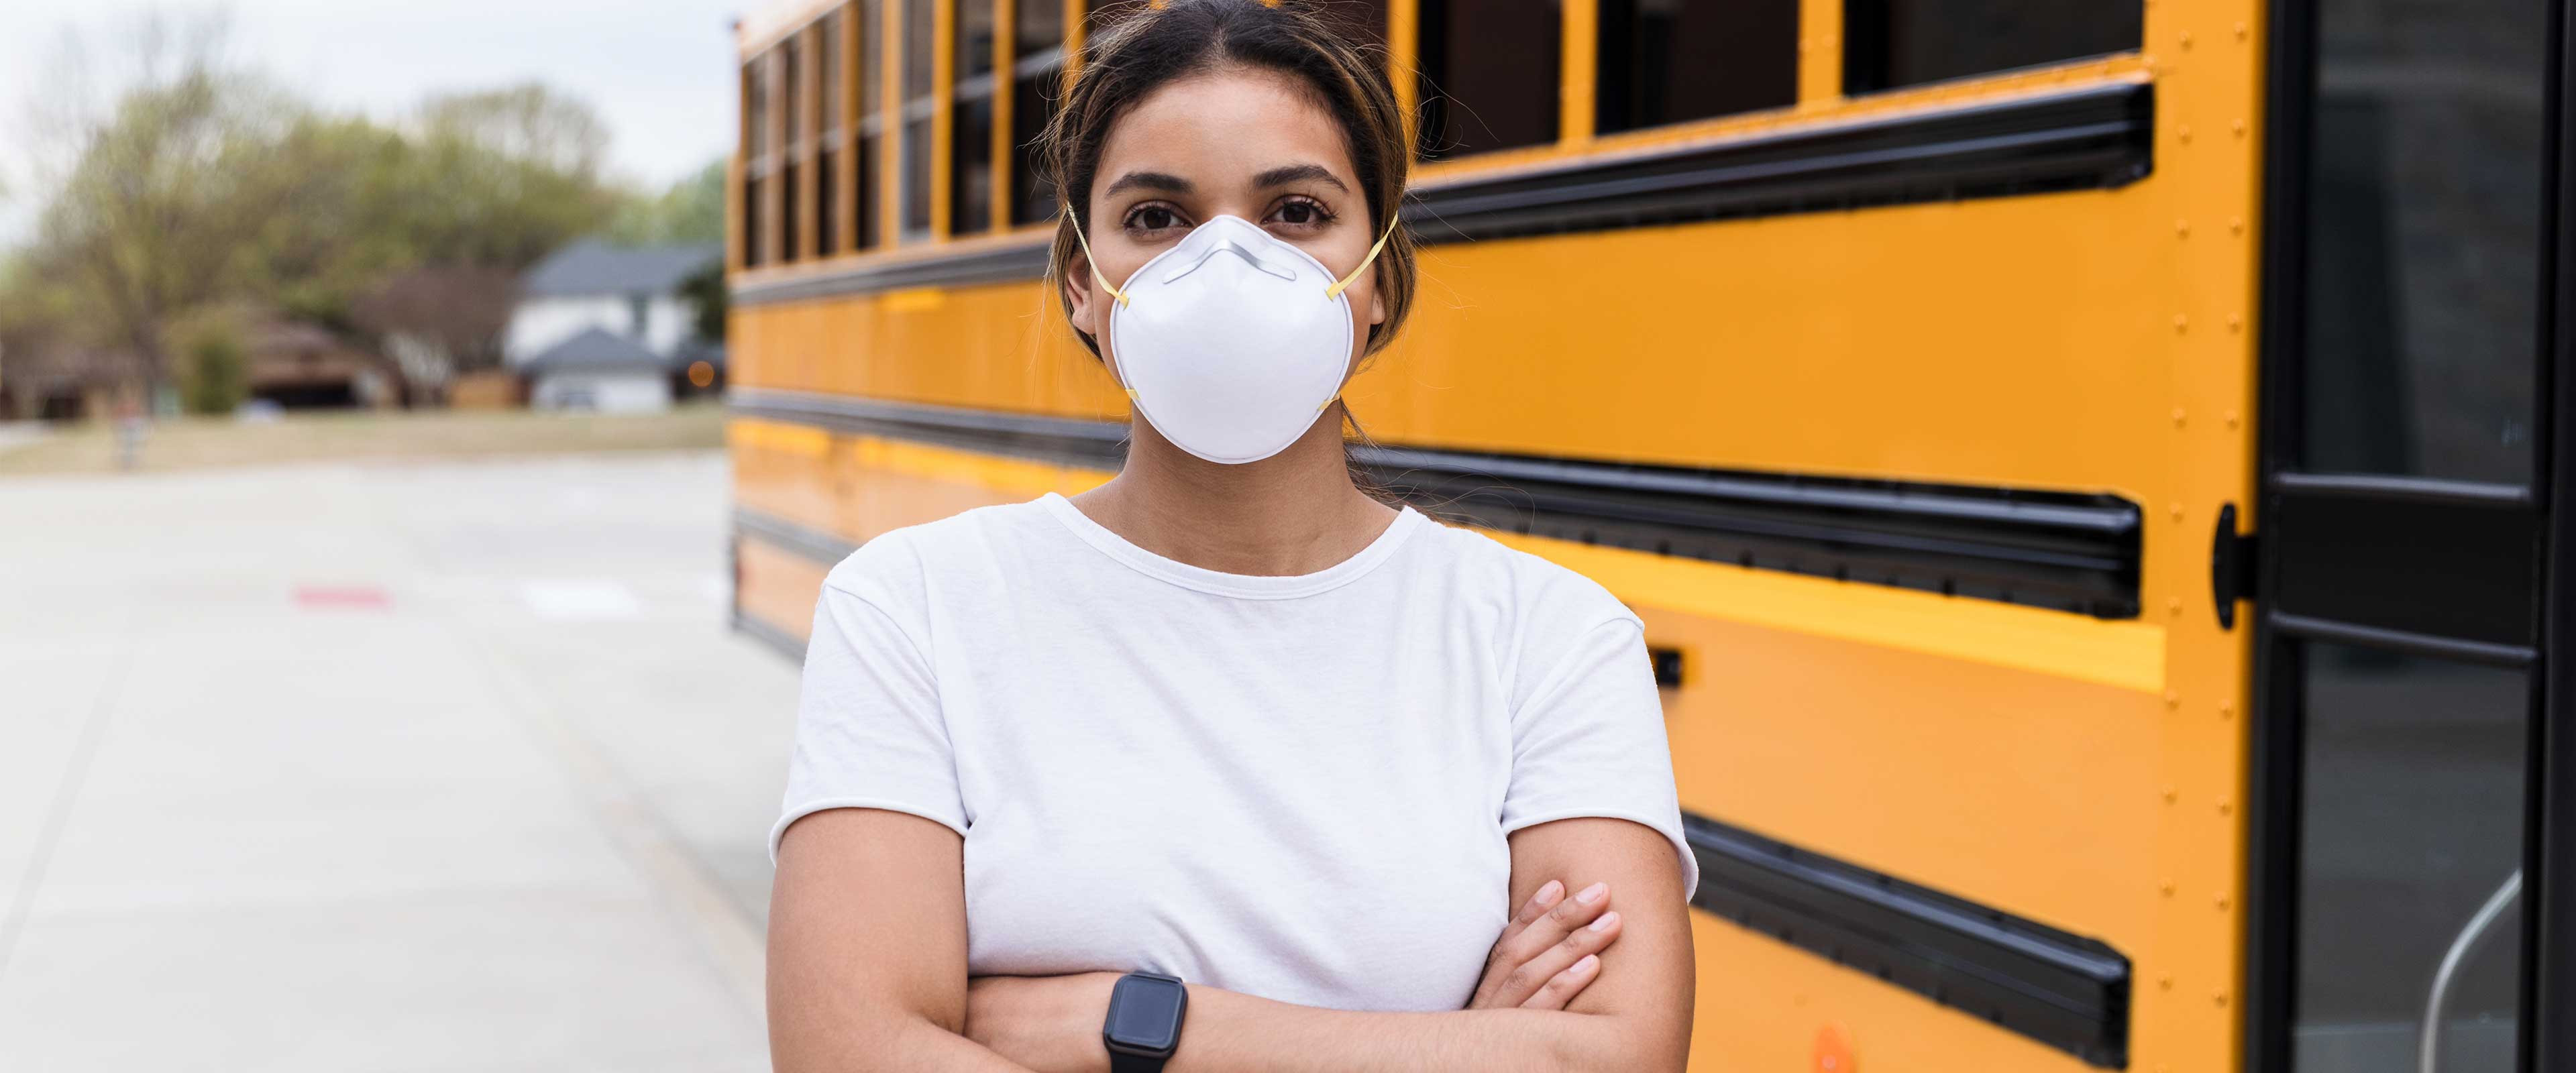 A woman wearing a mask stands next to a school bus.